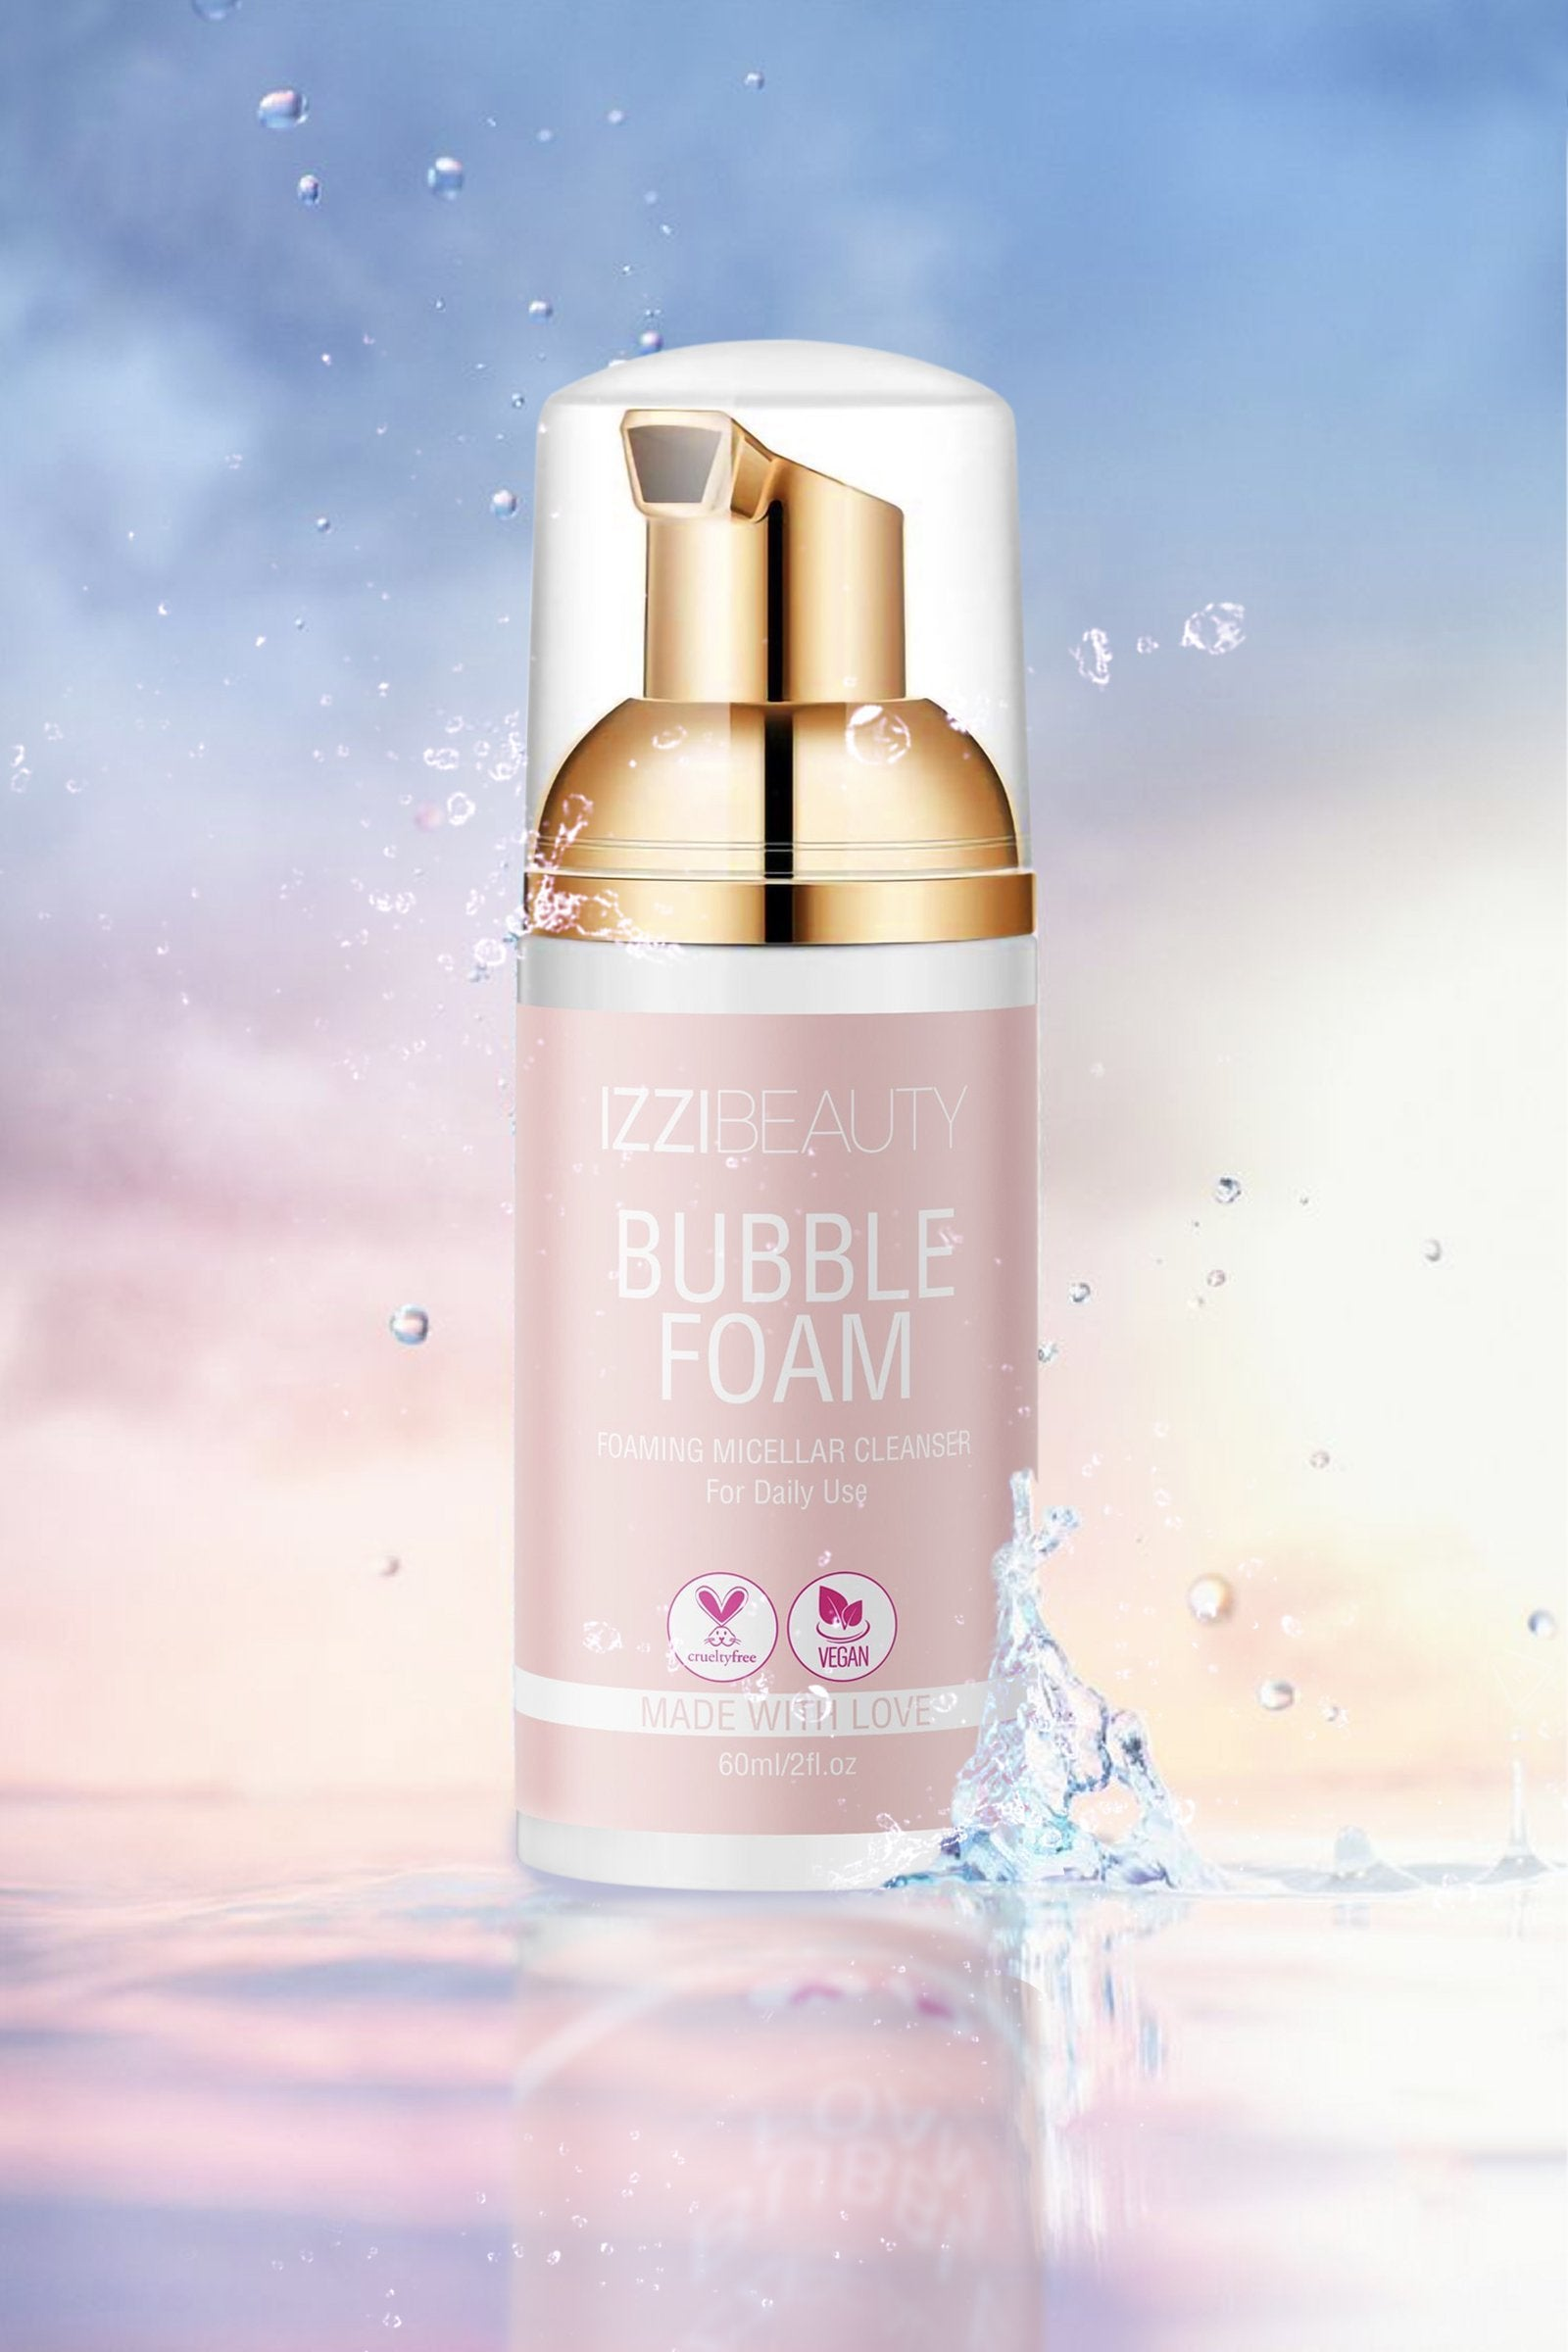 BUBBLE FOAM - izzi cosmetics